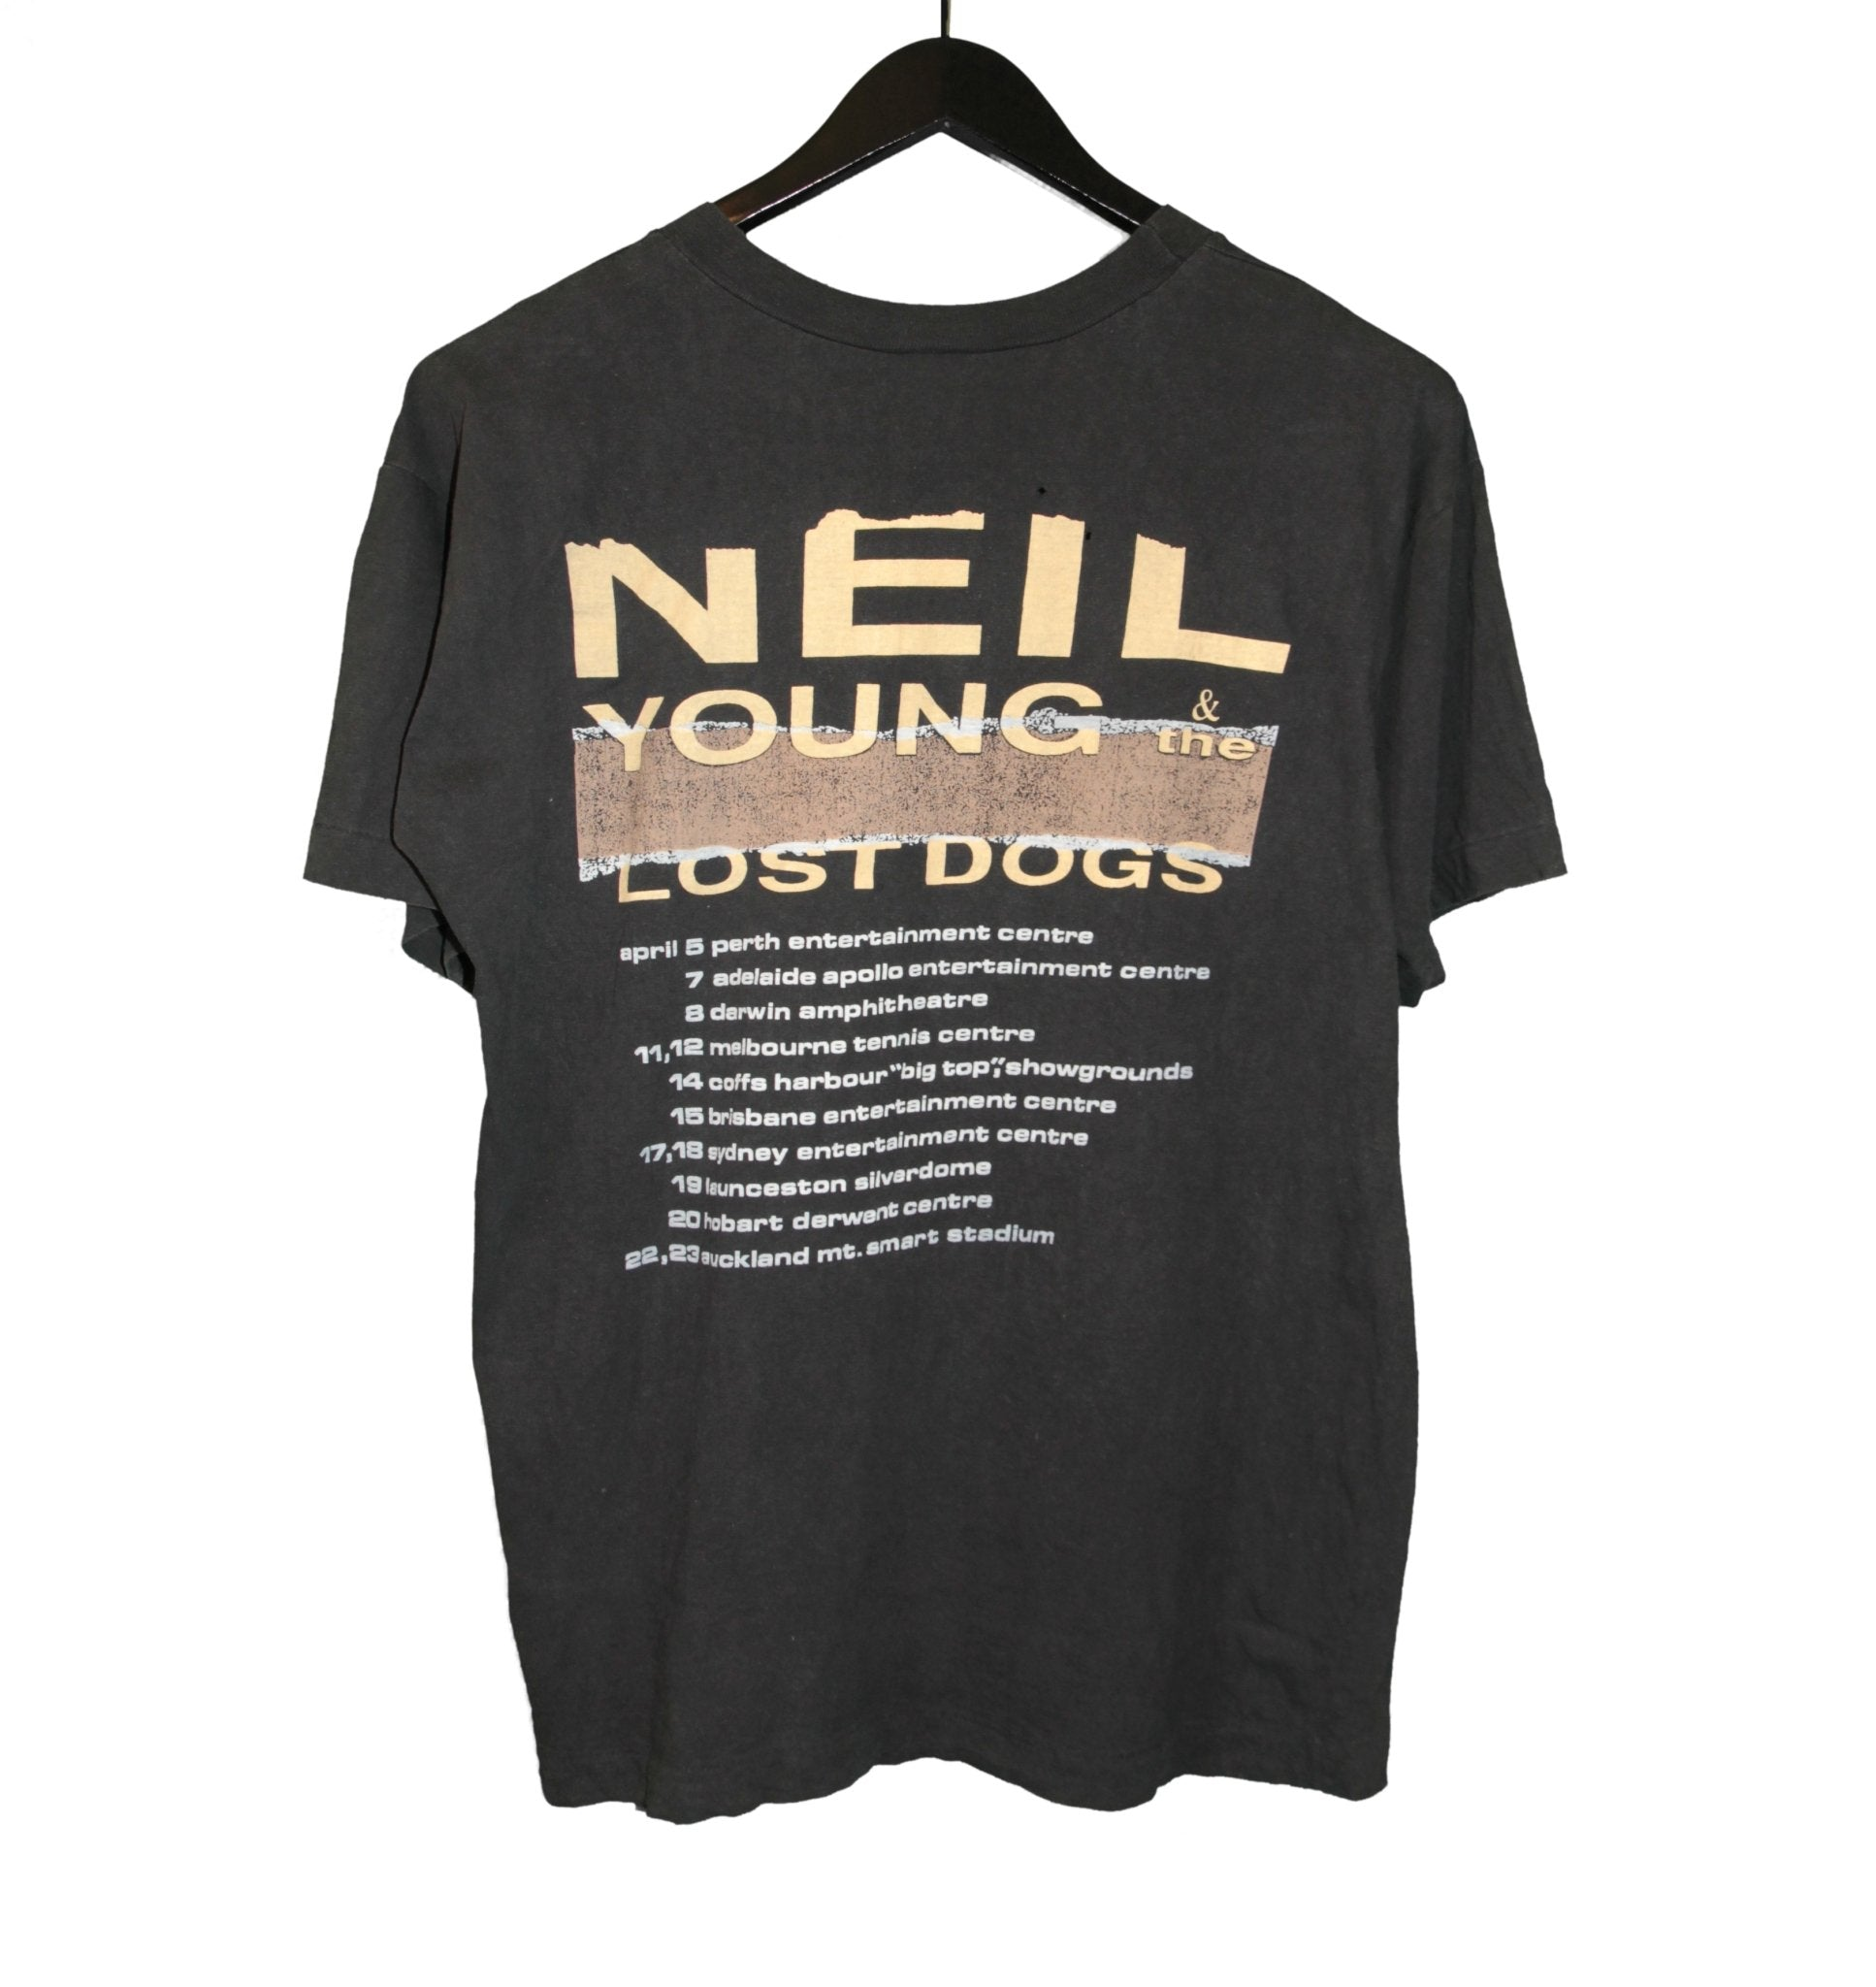 Neil Young & The Lost Dogs 1989 Tour Shirt - Faded AU